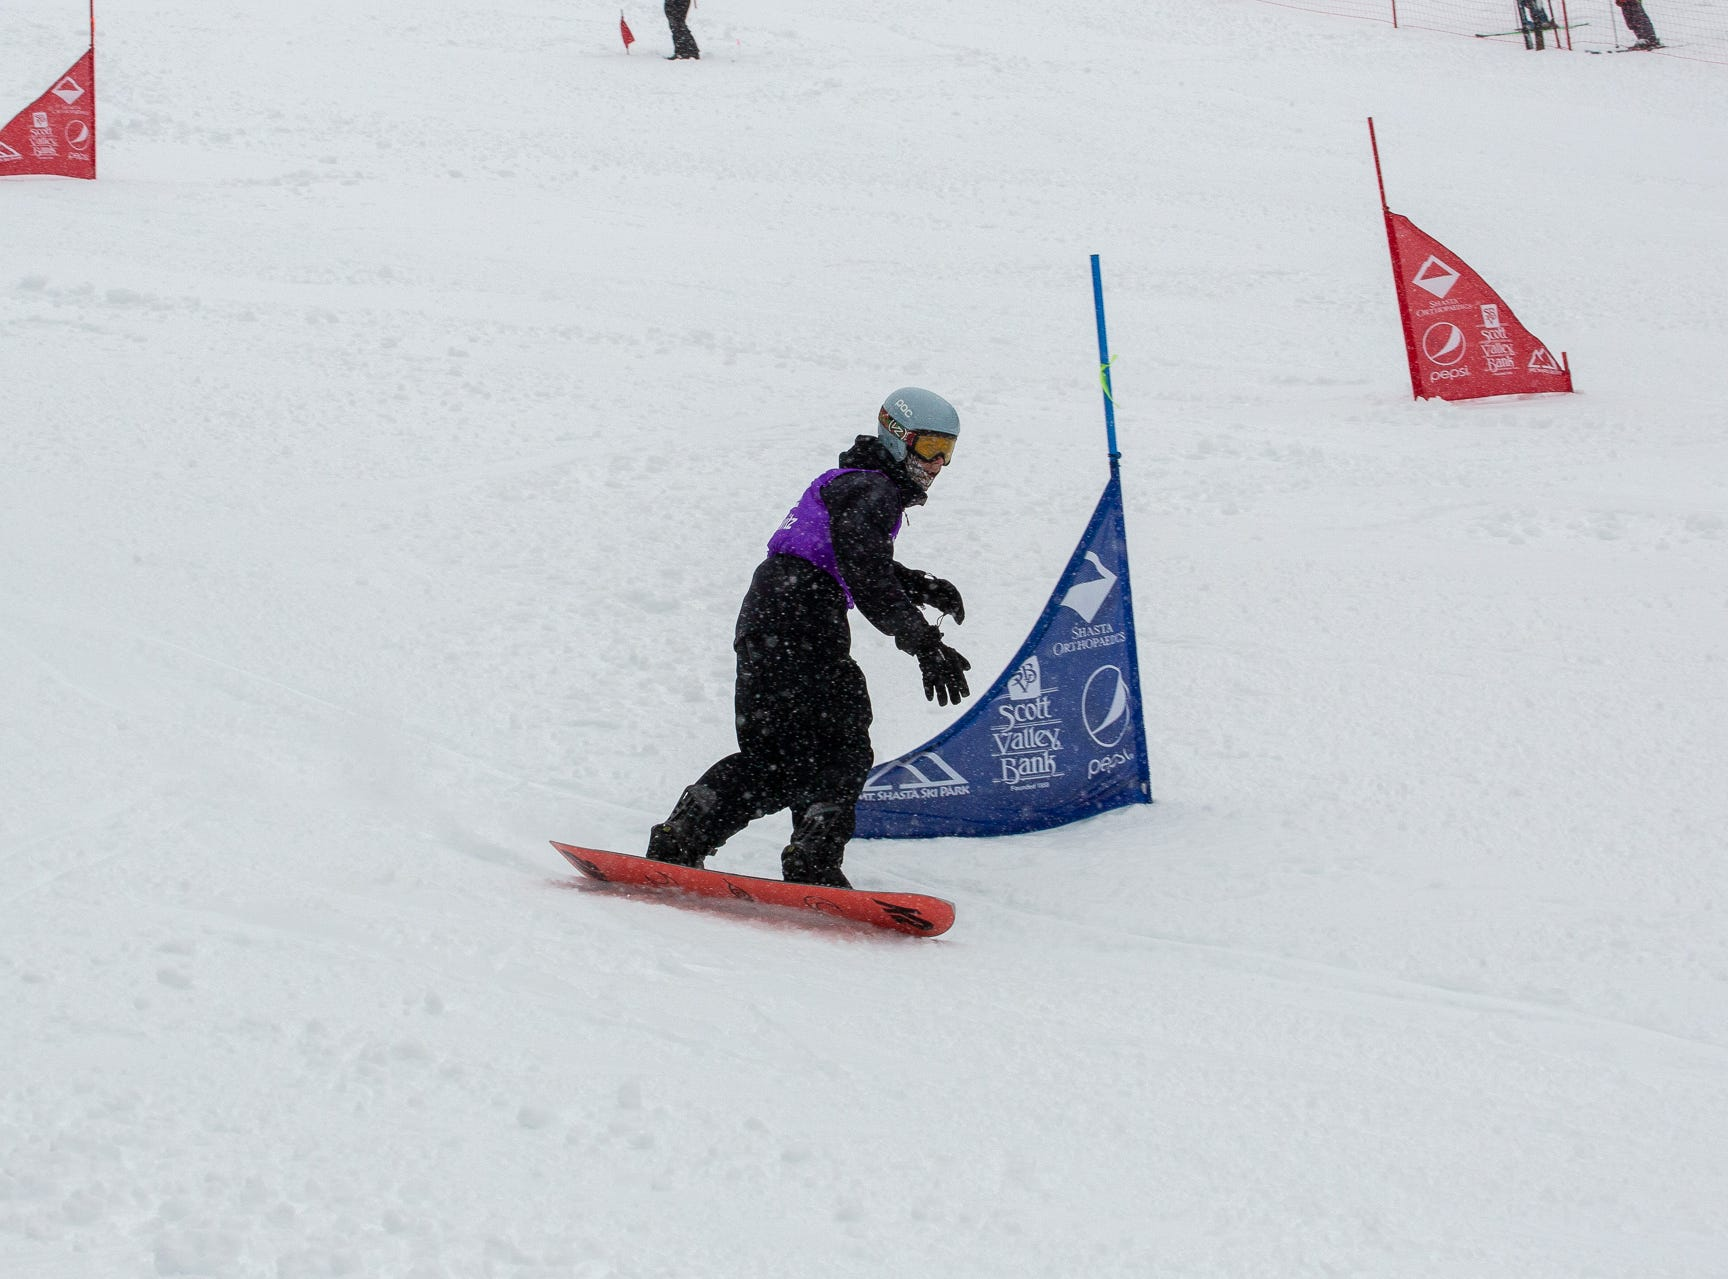 Gabe Rubanowitz of Shasta High competes in the boys slalom at the 2019 snowboard state championships held March 4-5 at Mt. Shasta Ski Park.